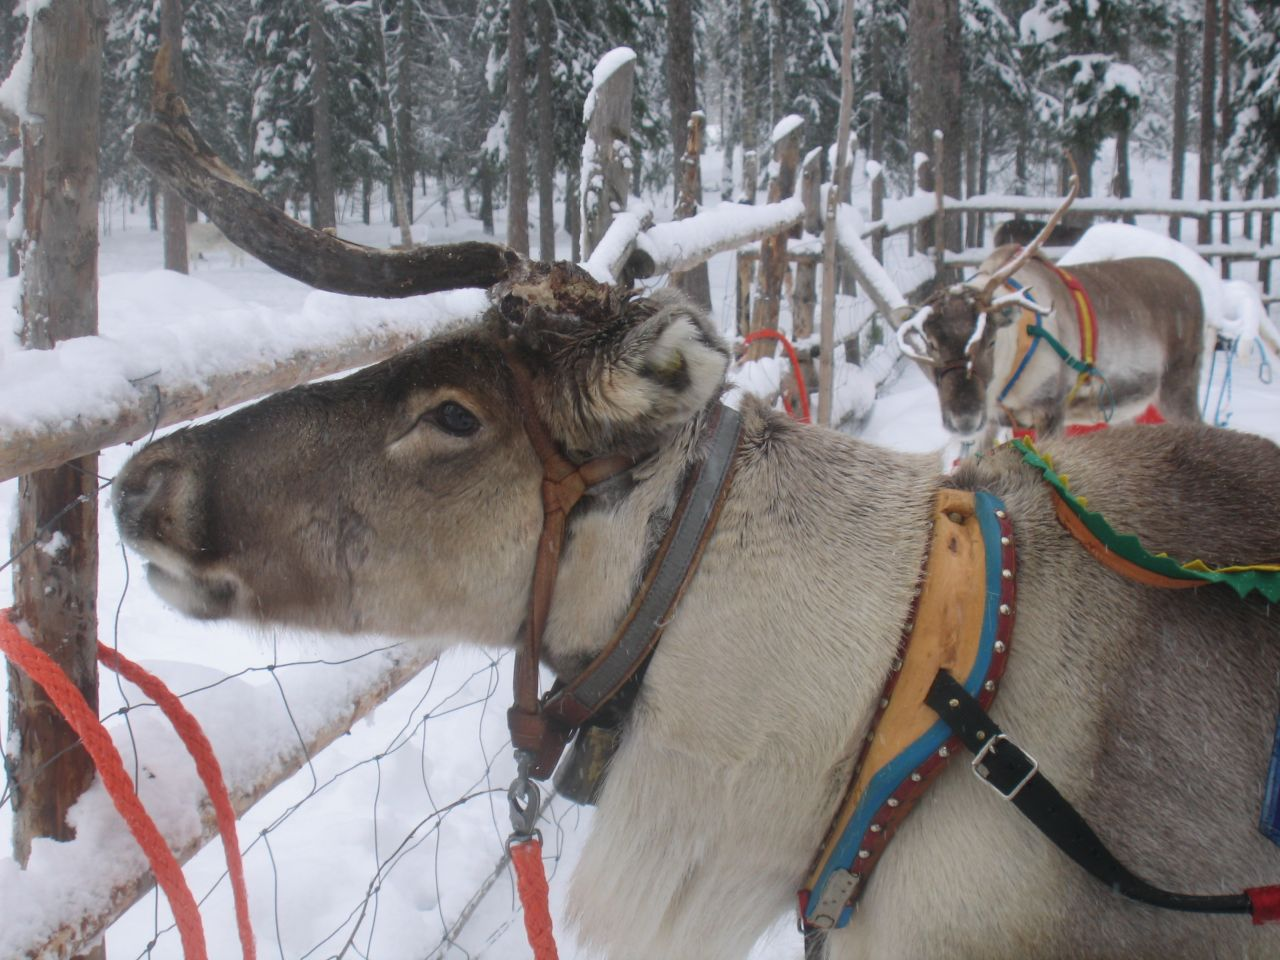 """Reindeer / IMG_7182"" by Karen P. via Flickr Creative Commons"